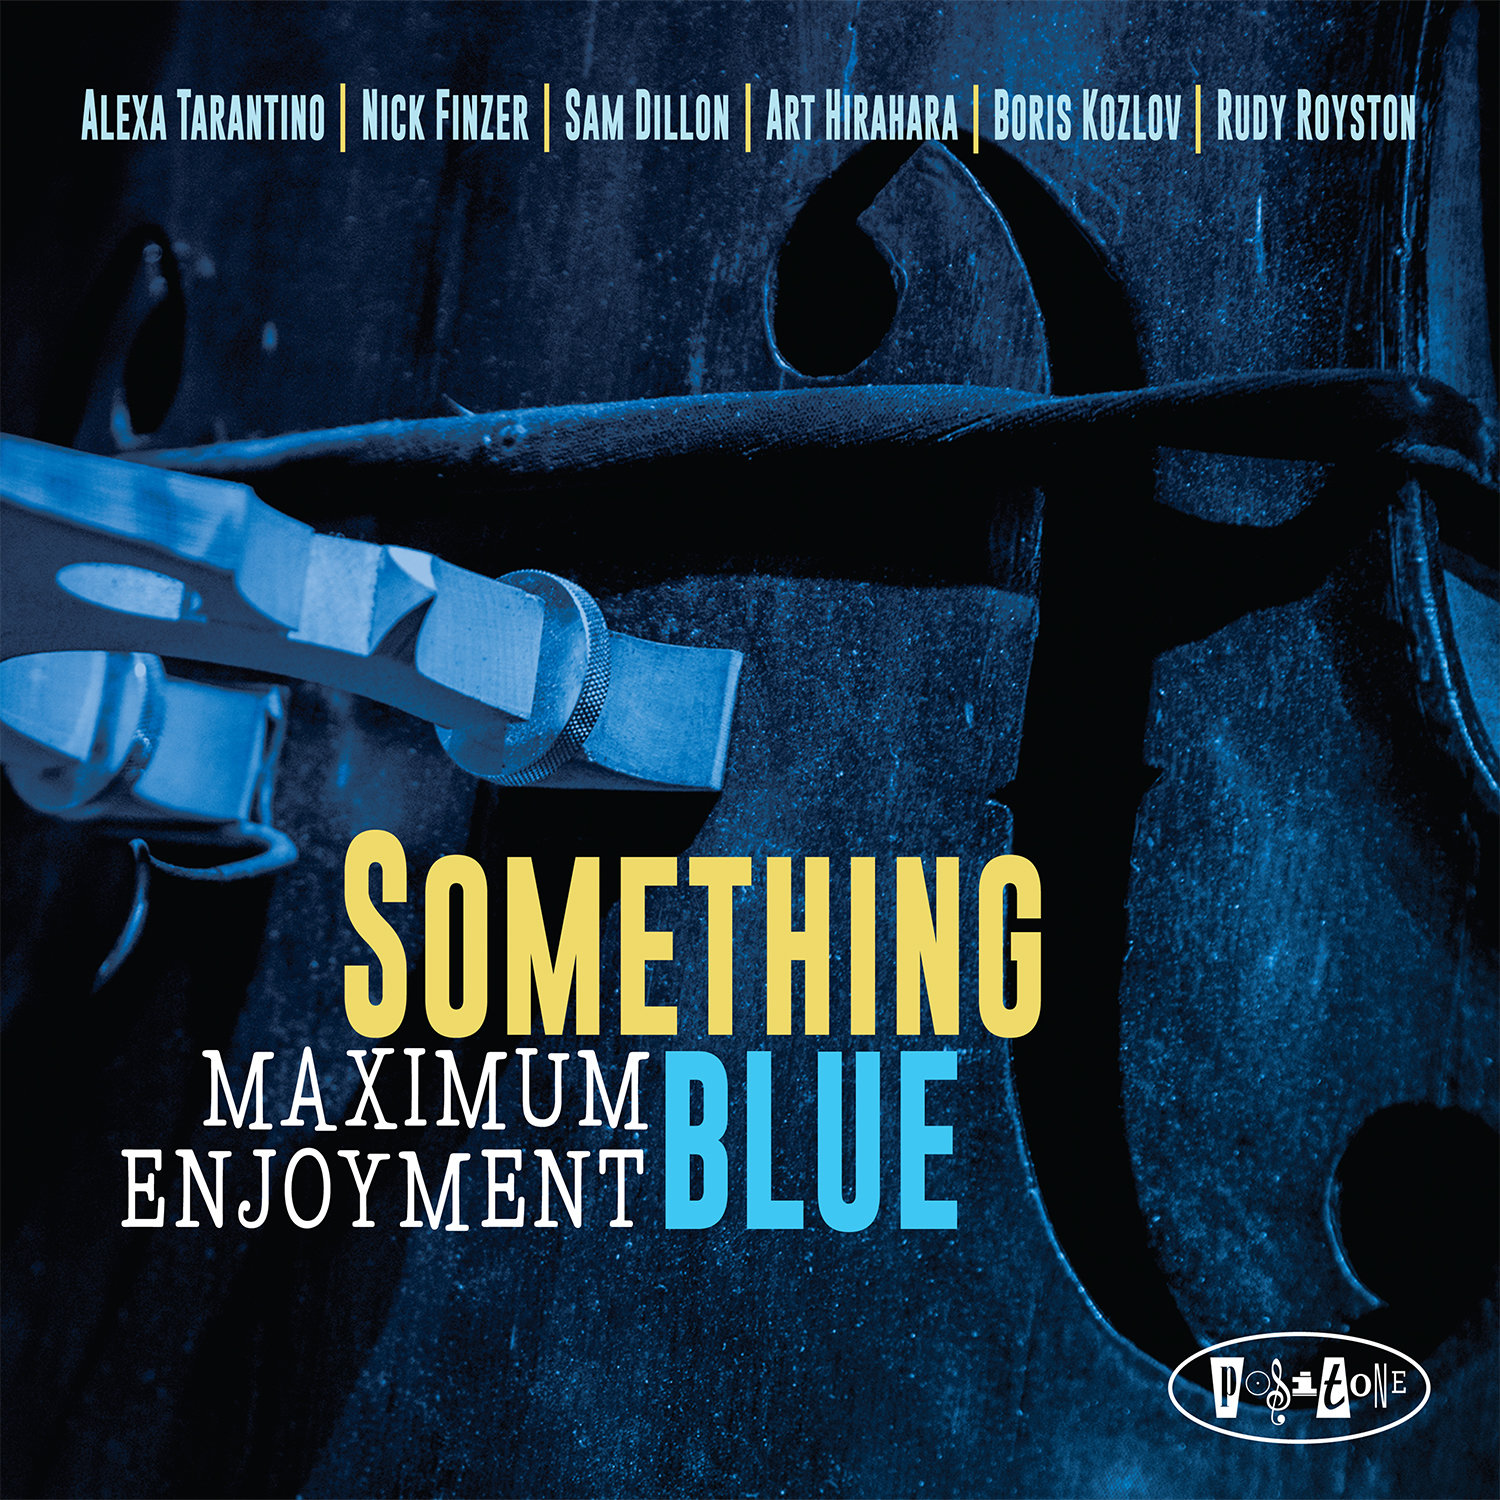 Something Blue, nuevo disco de Maximum Enjoyment